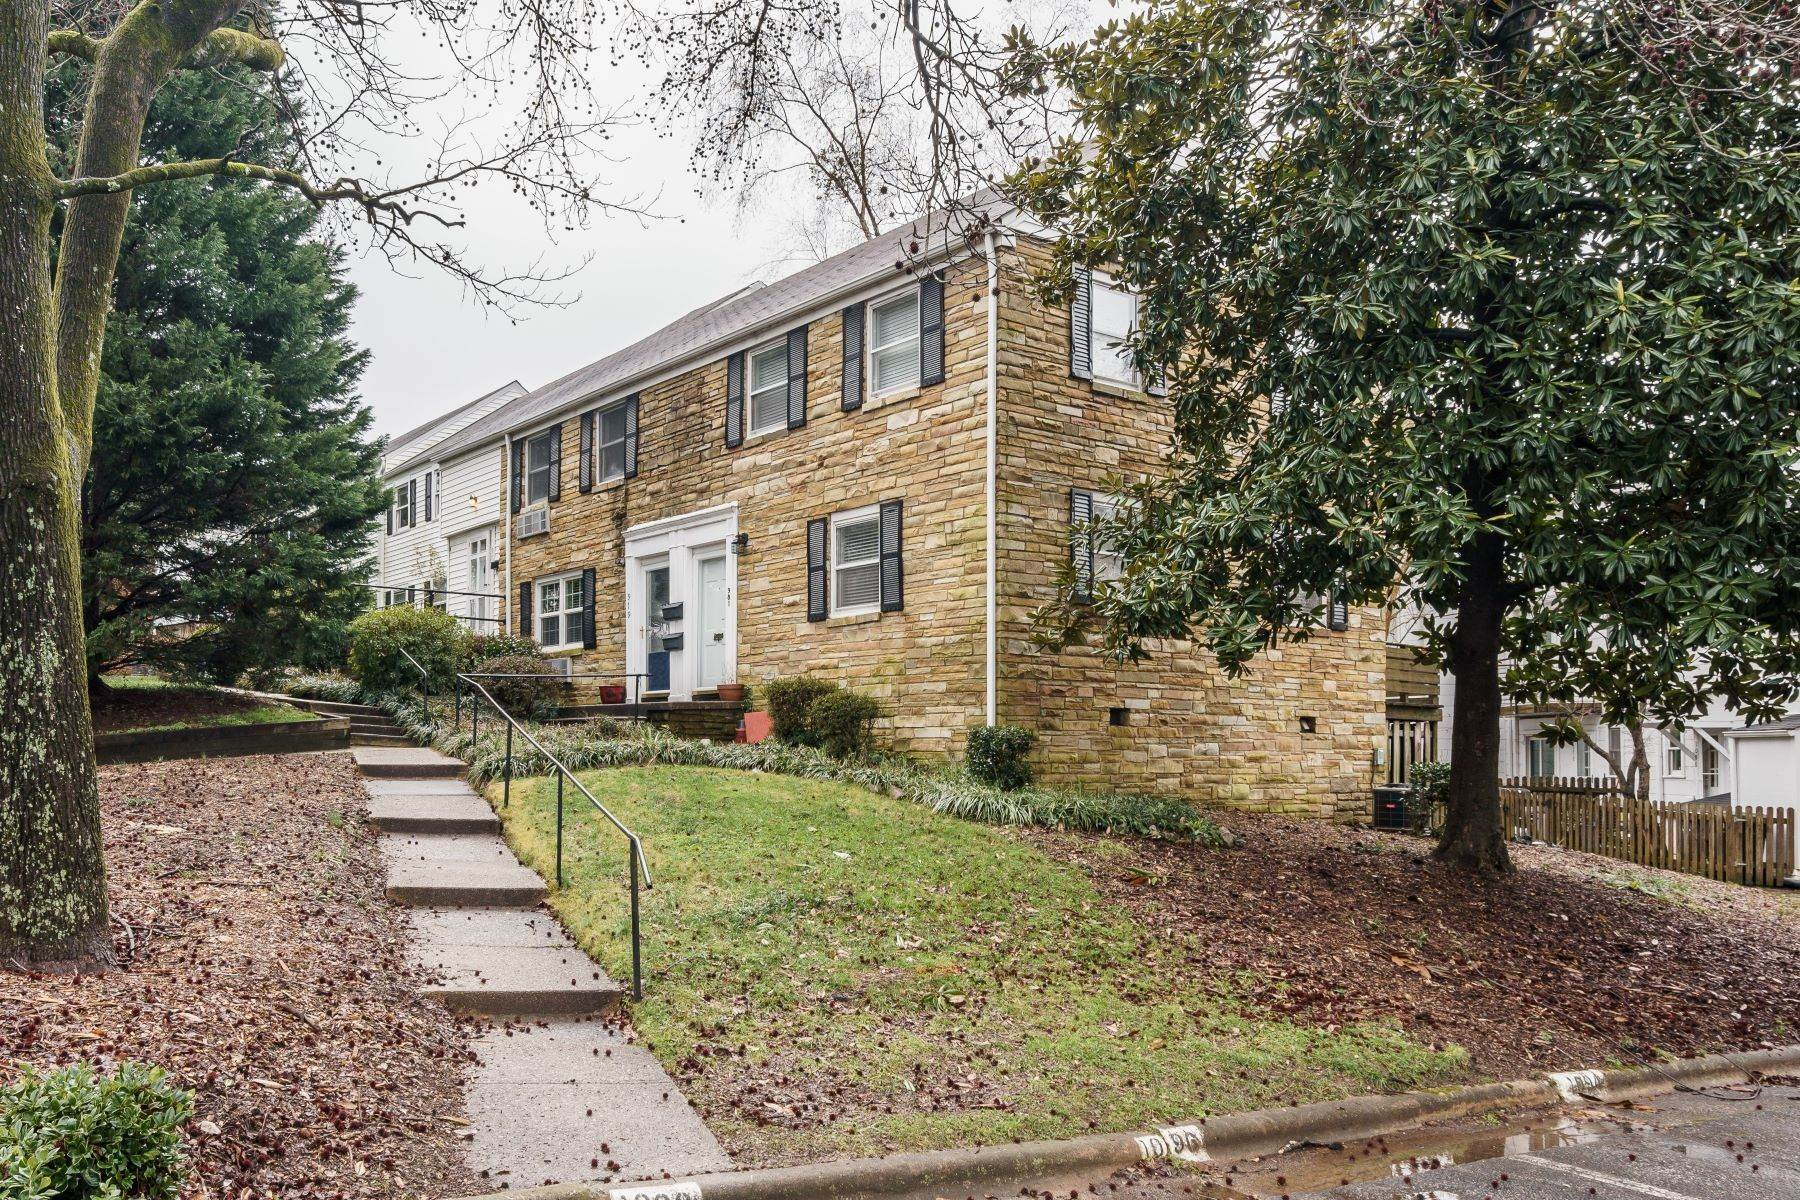 16. Condominiums for Sale at 979 St. Mary's St Unit A Raleigh, North Carolina 27605 United States